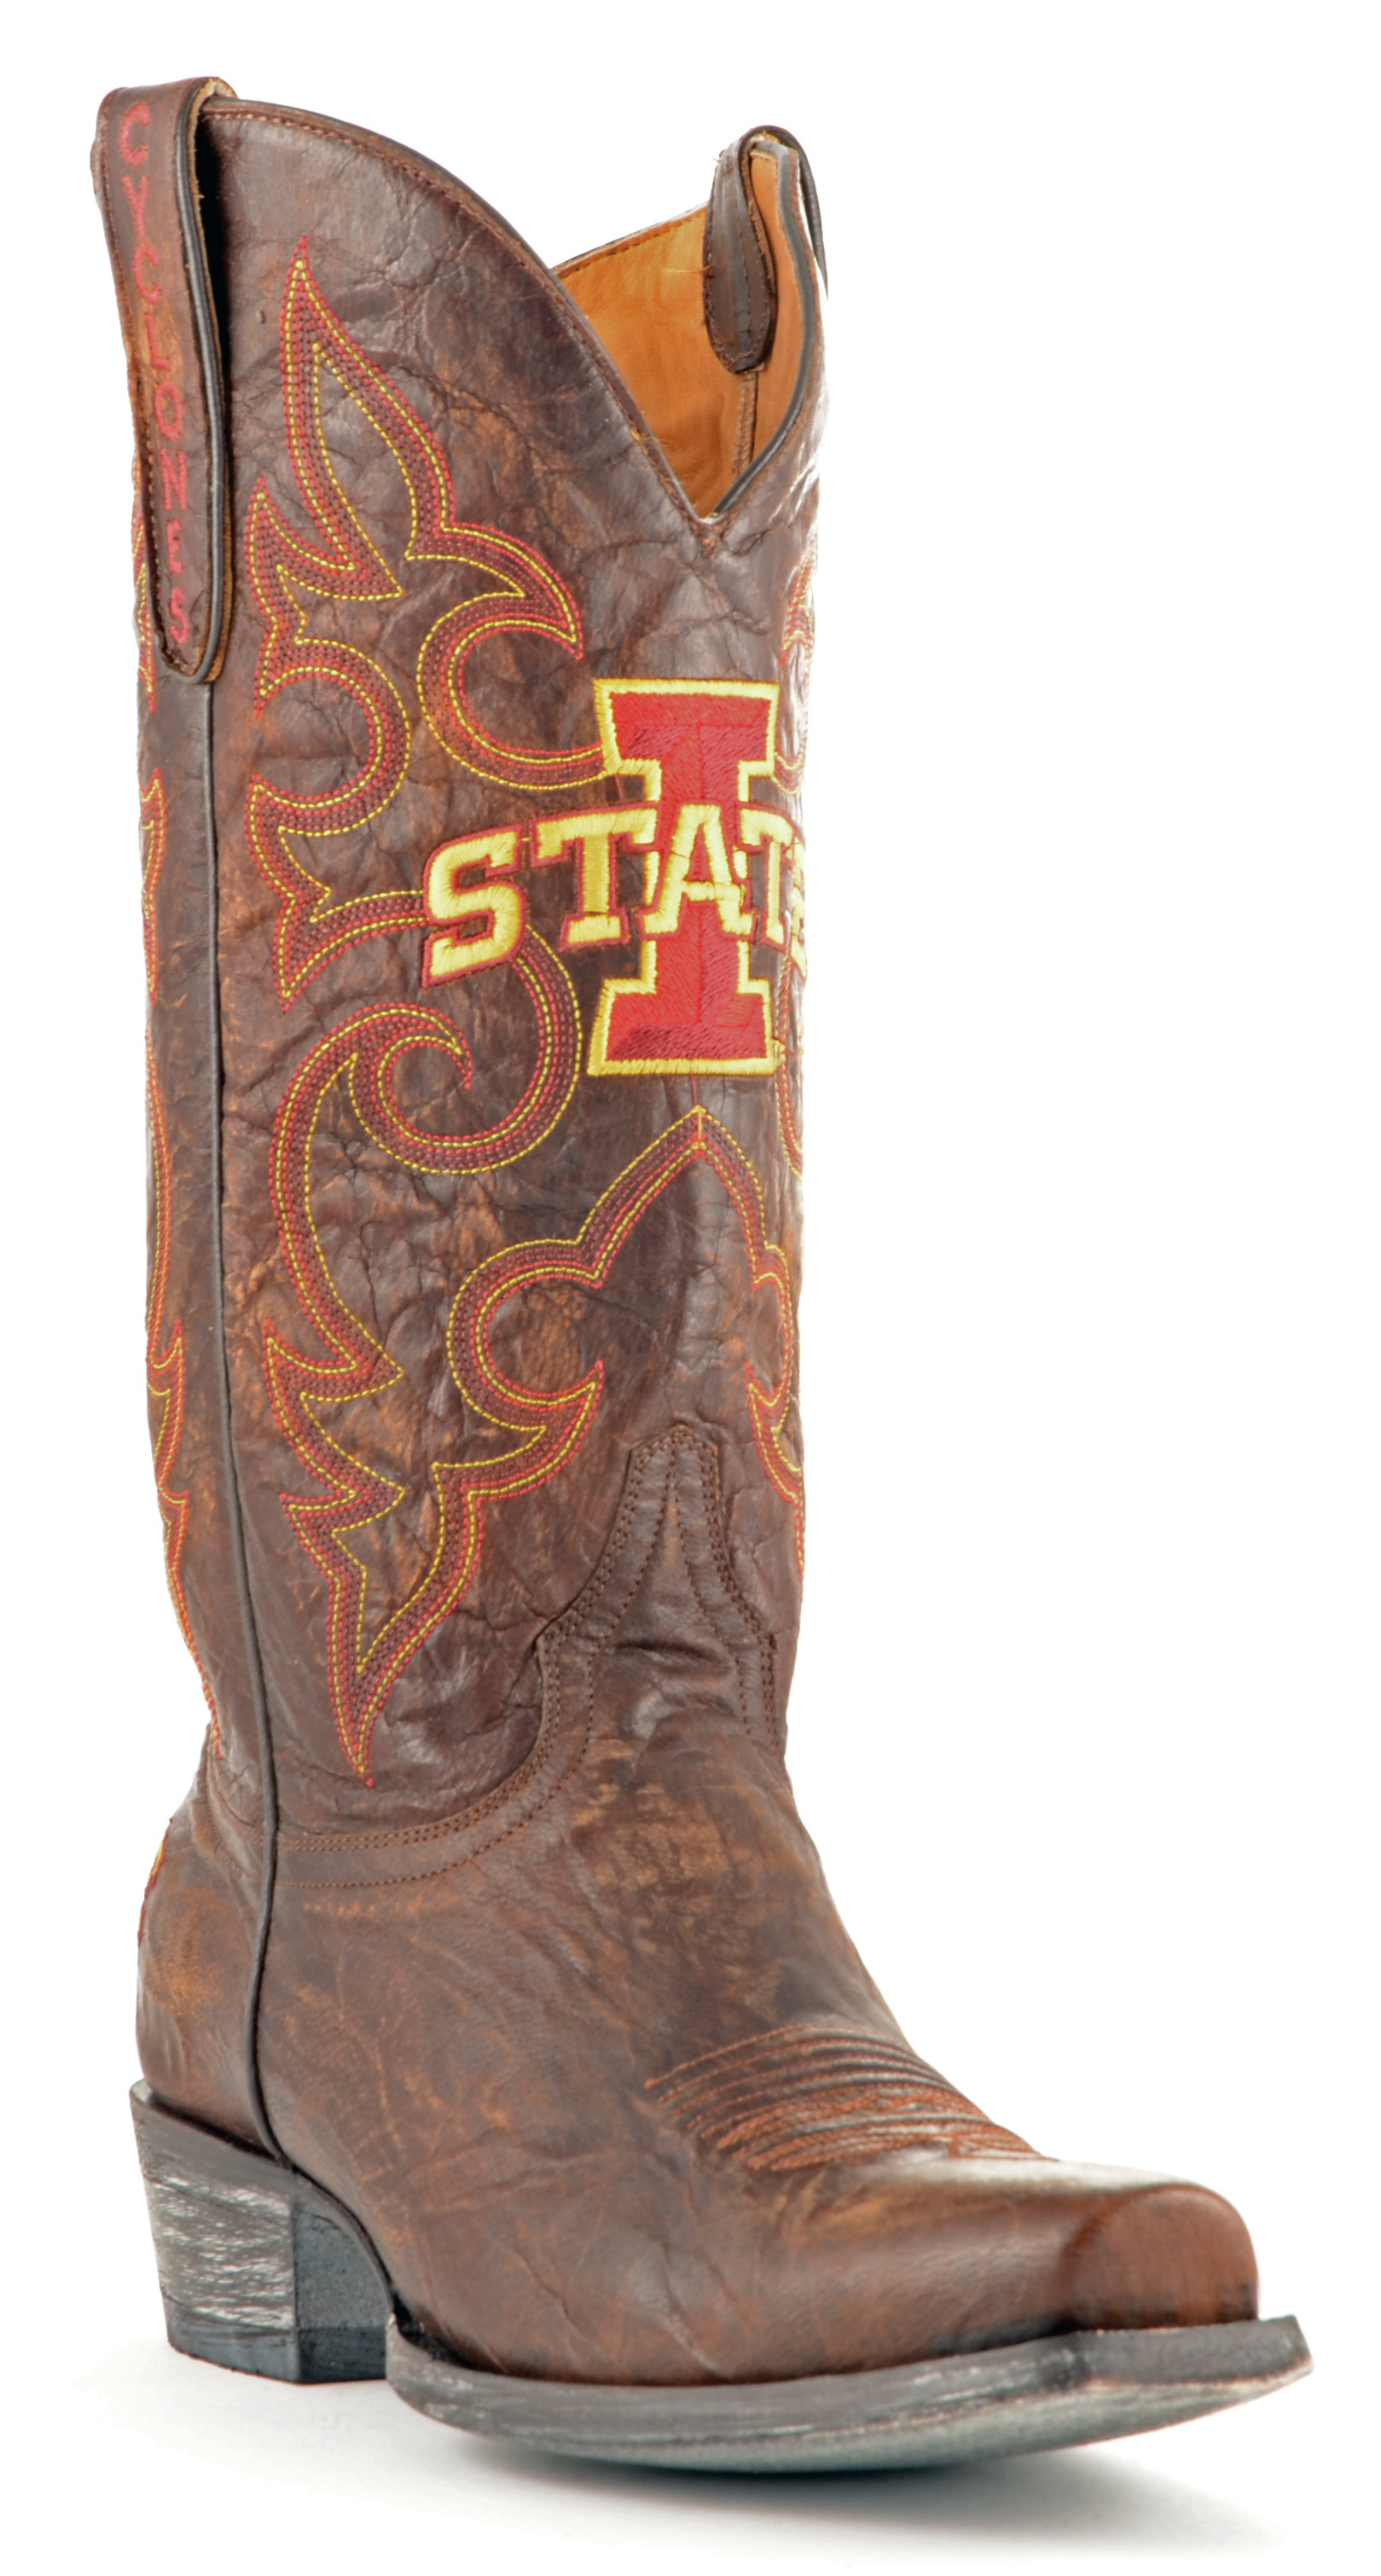 ncaa iowa state cyclones men's board room style boots, brass, 8.5 d (m) us by GameDay Boots